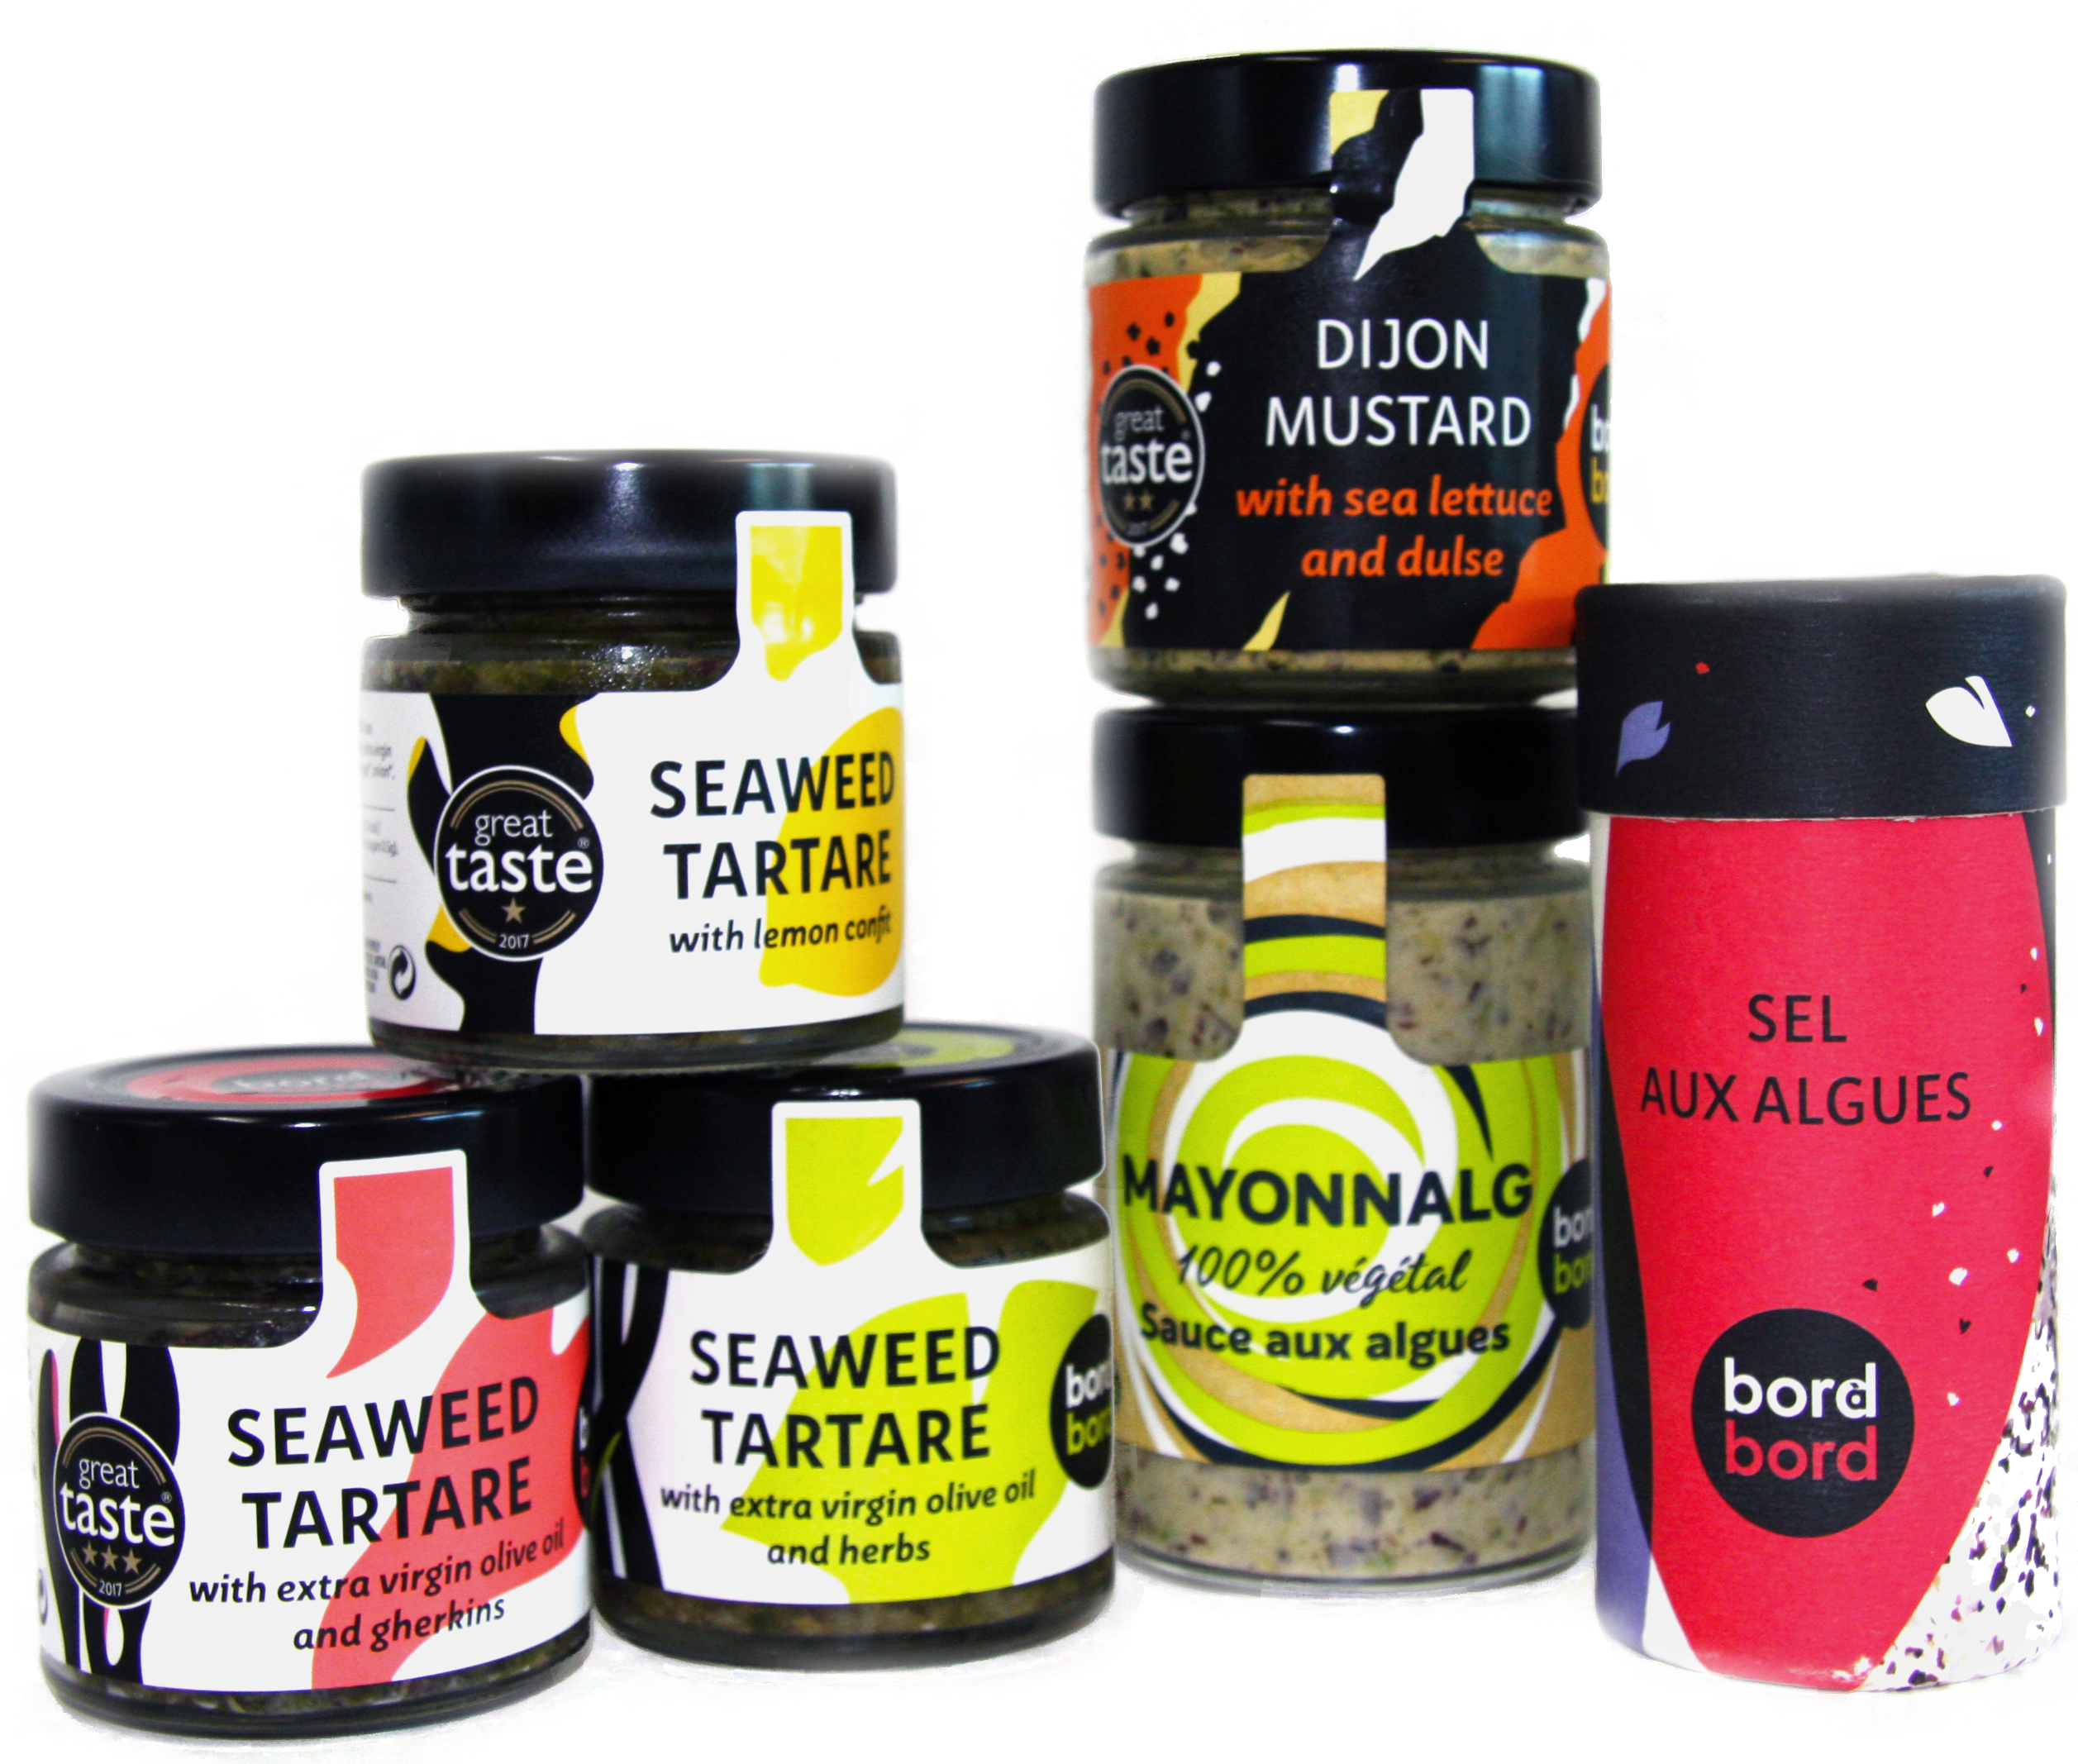 Buy Edible Organic Seaweeds Online | Edible Seaweed UK Supplier